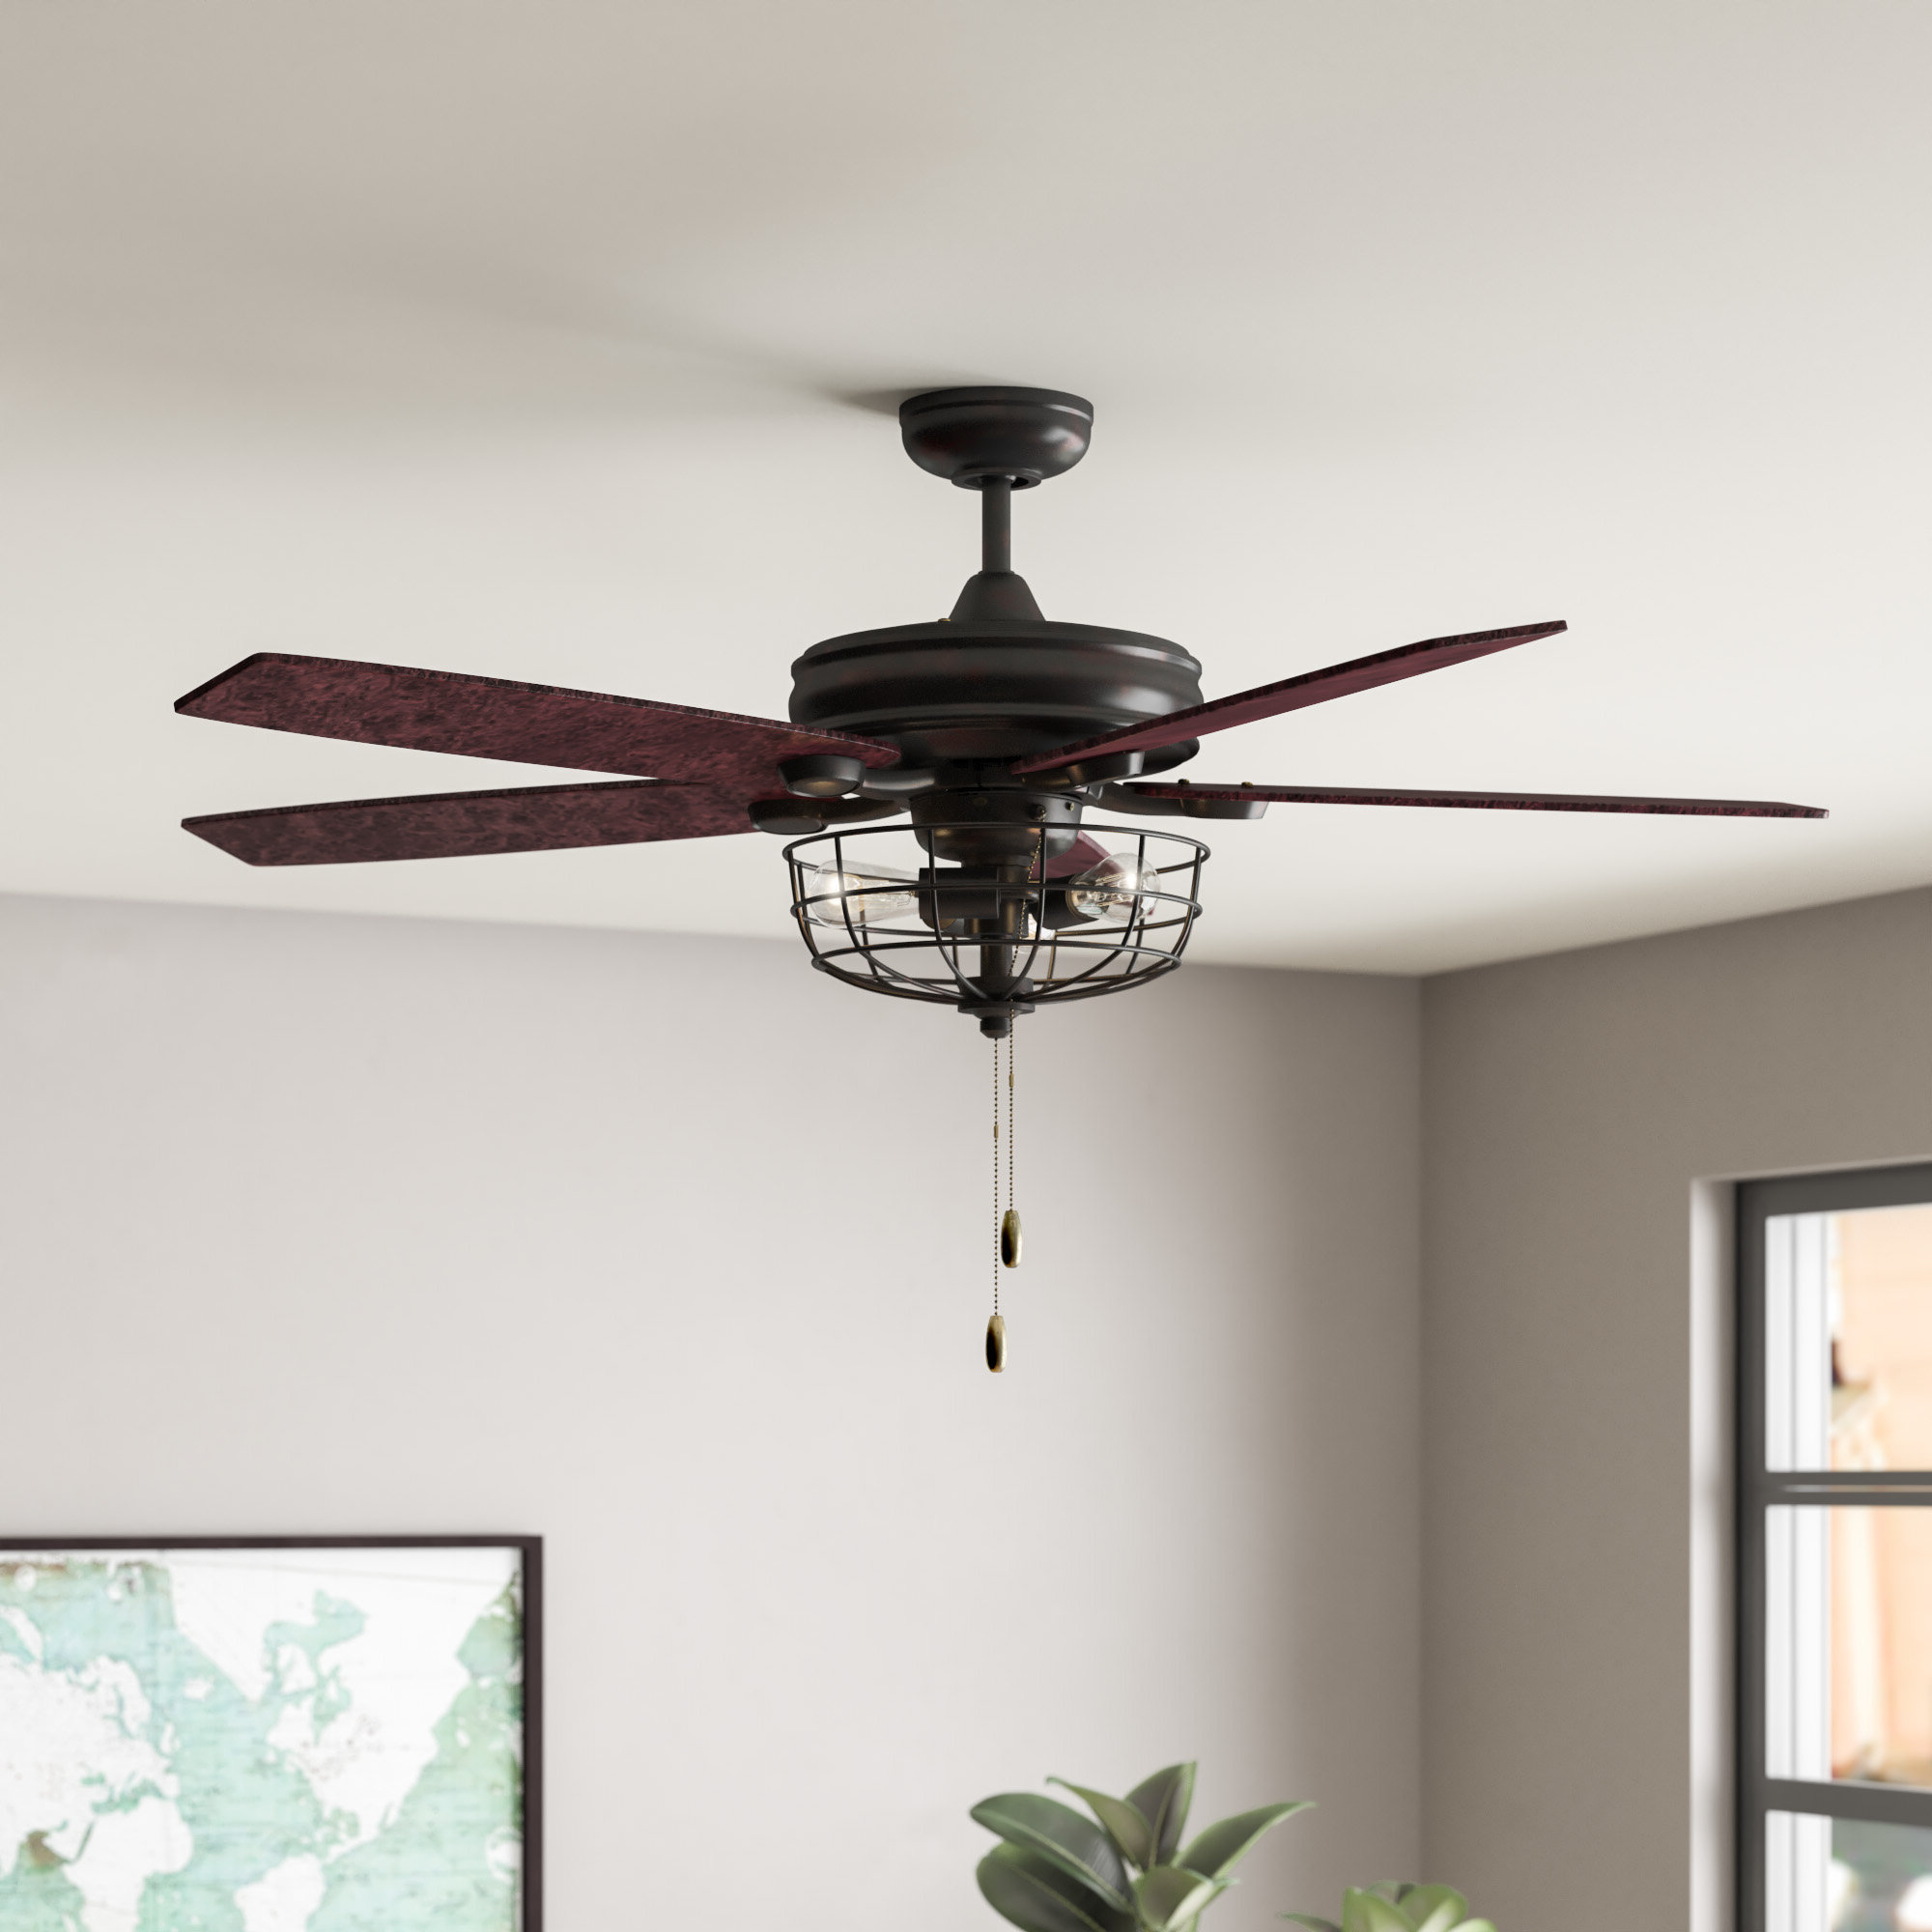 Wayfair Throughout Most Recent Marcoux 5 Blade Ceiling Fans (View 11 of 20)